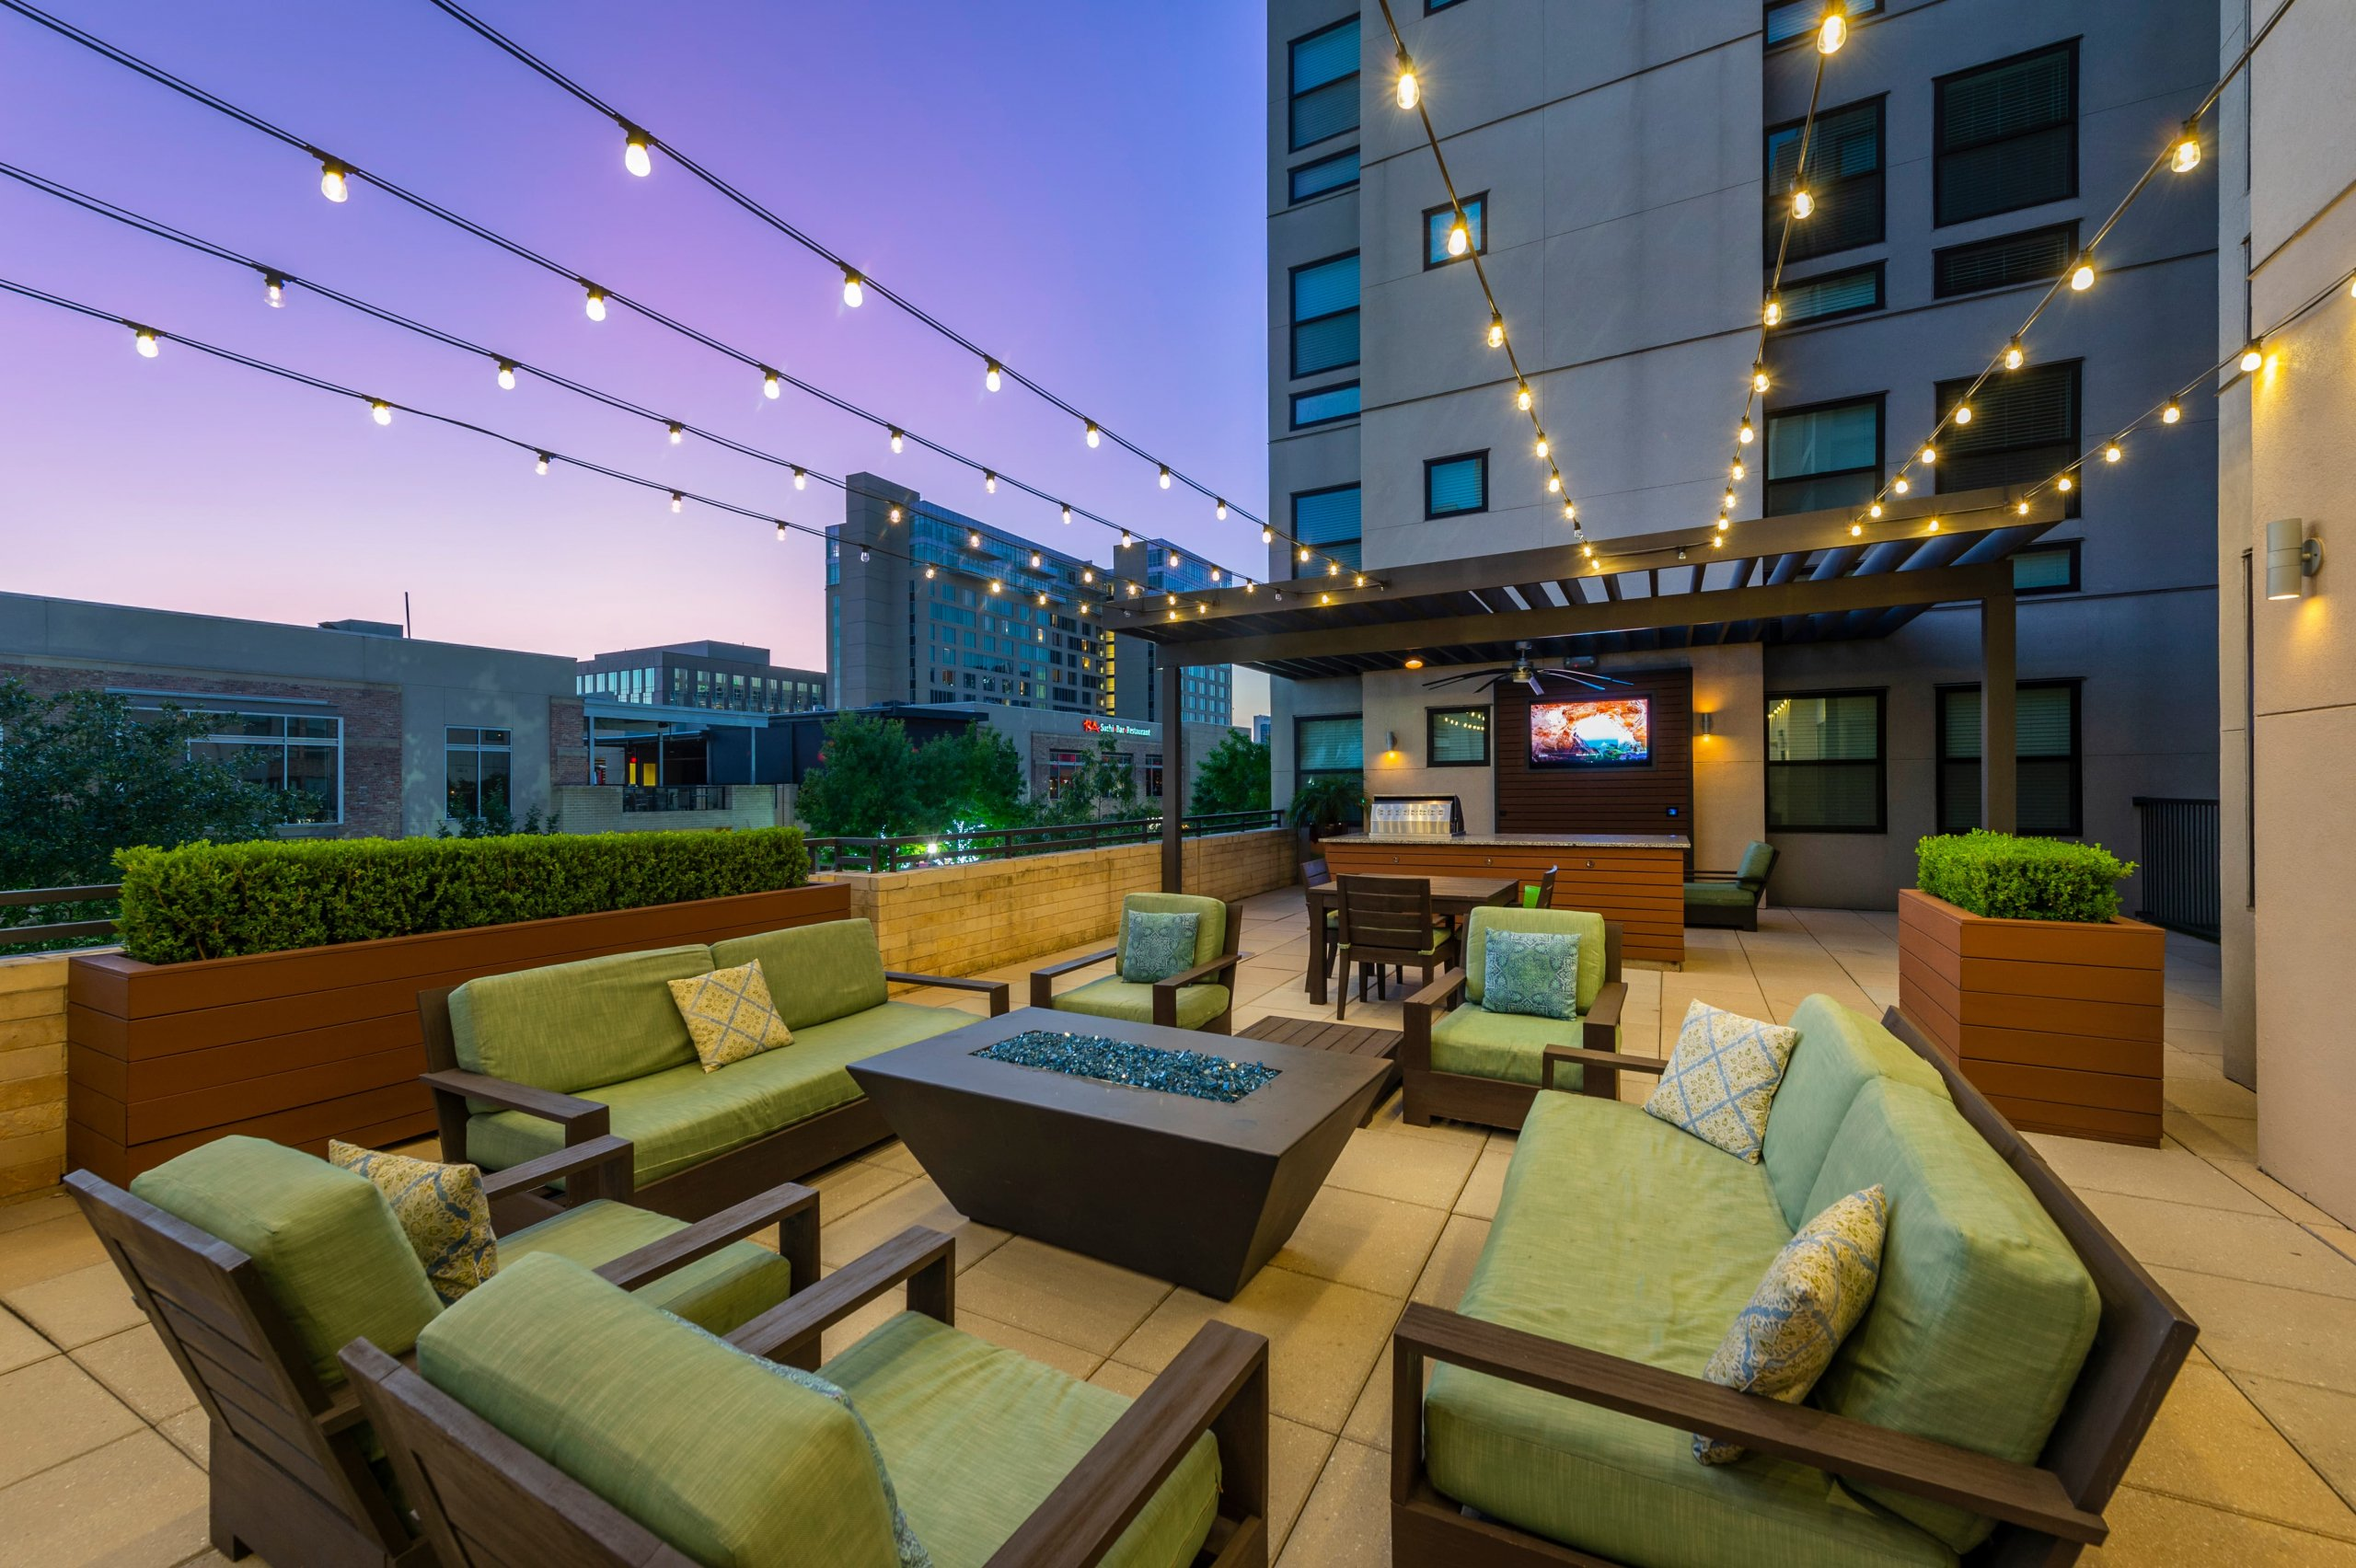 Madera Residential Apartment Investment Property in Texas